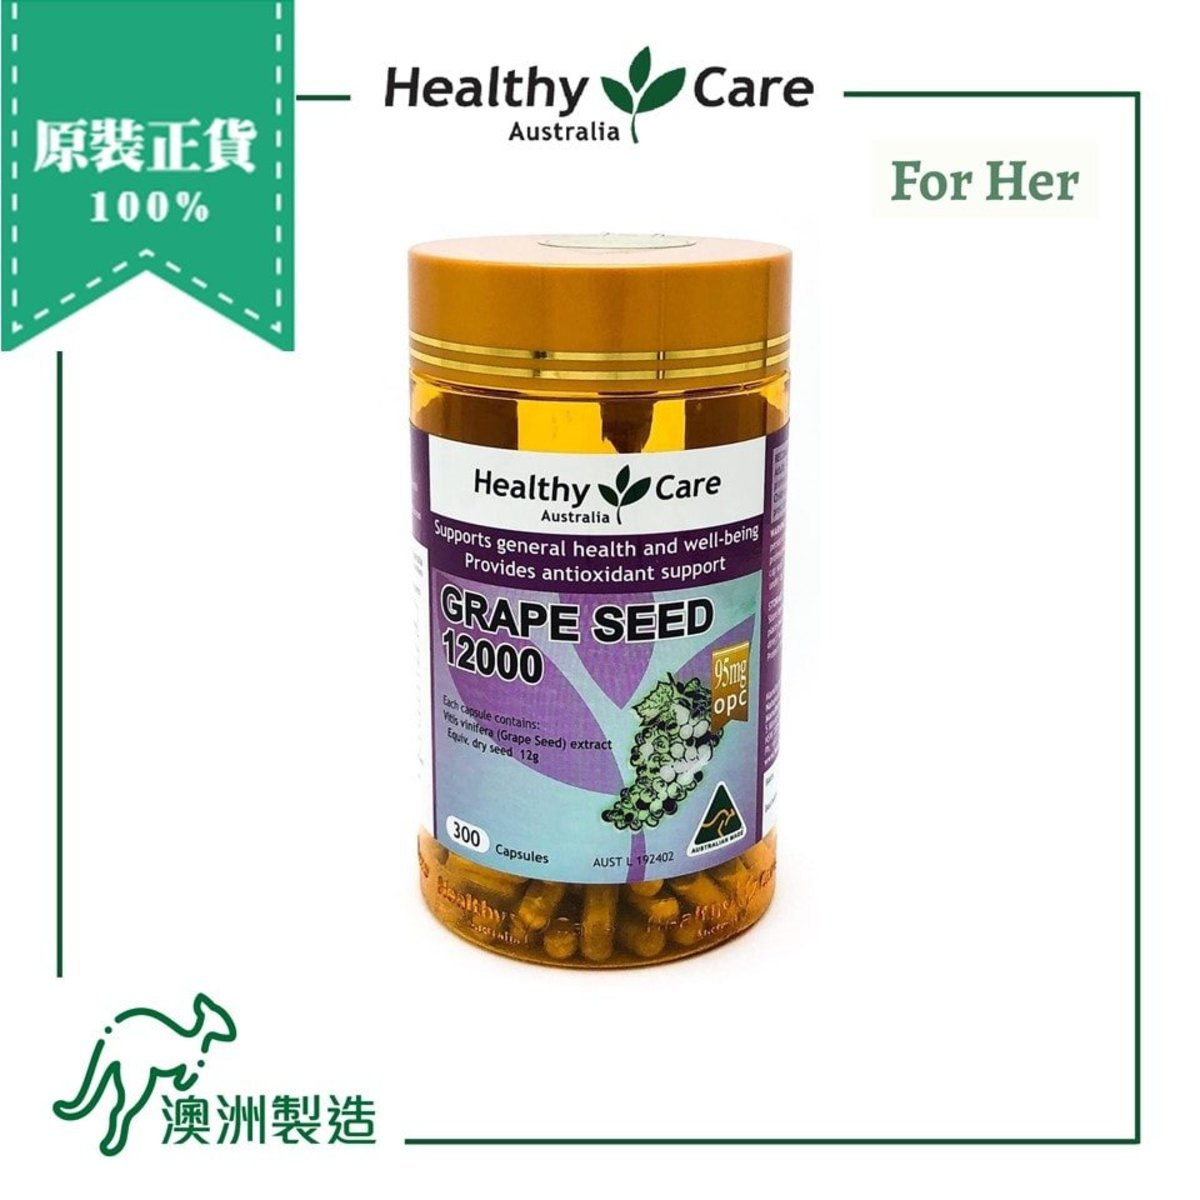 Grape Seed Extract 12000 Gold Jar 300 Capsules